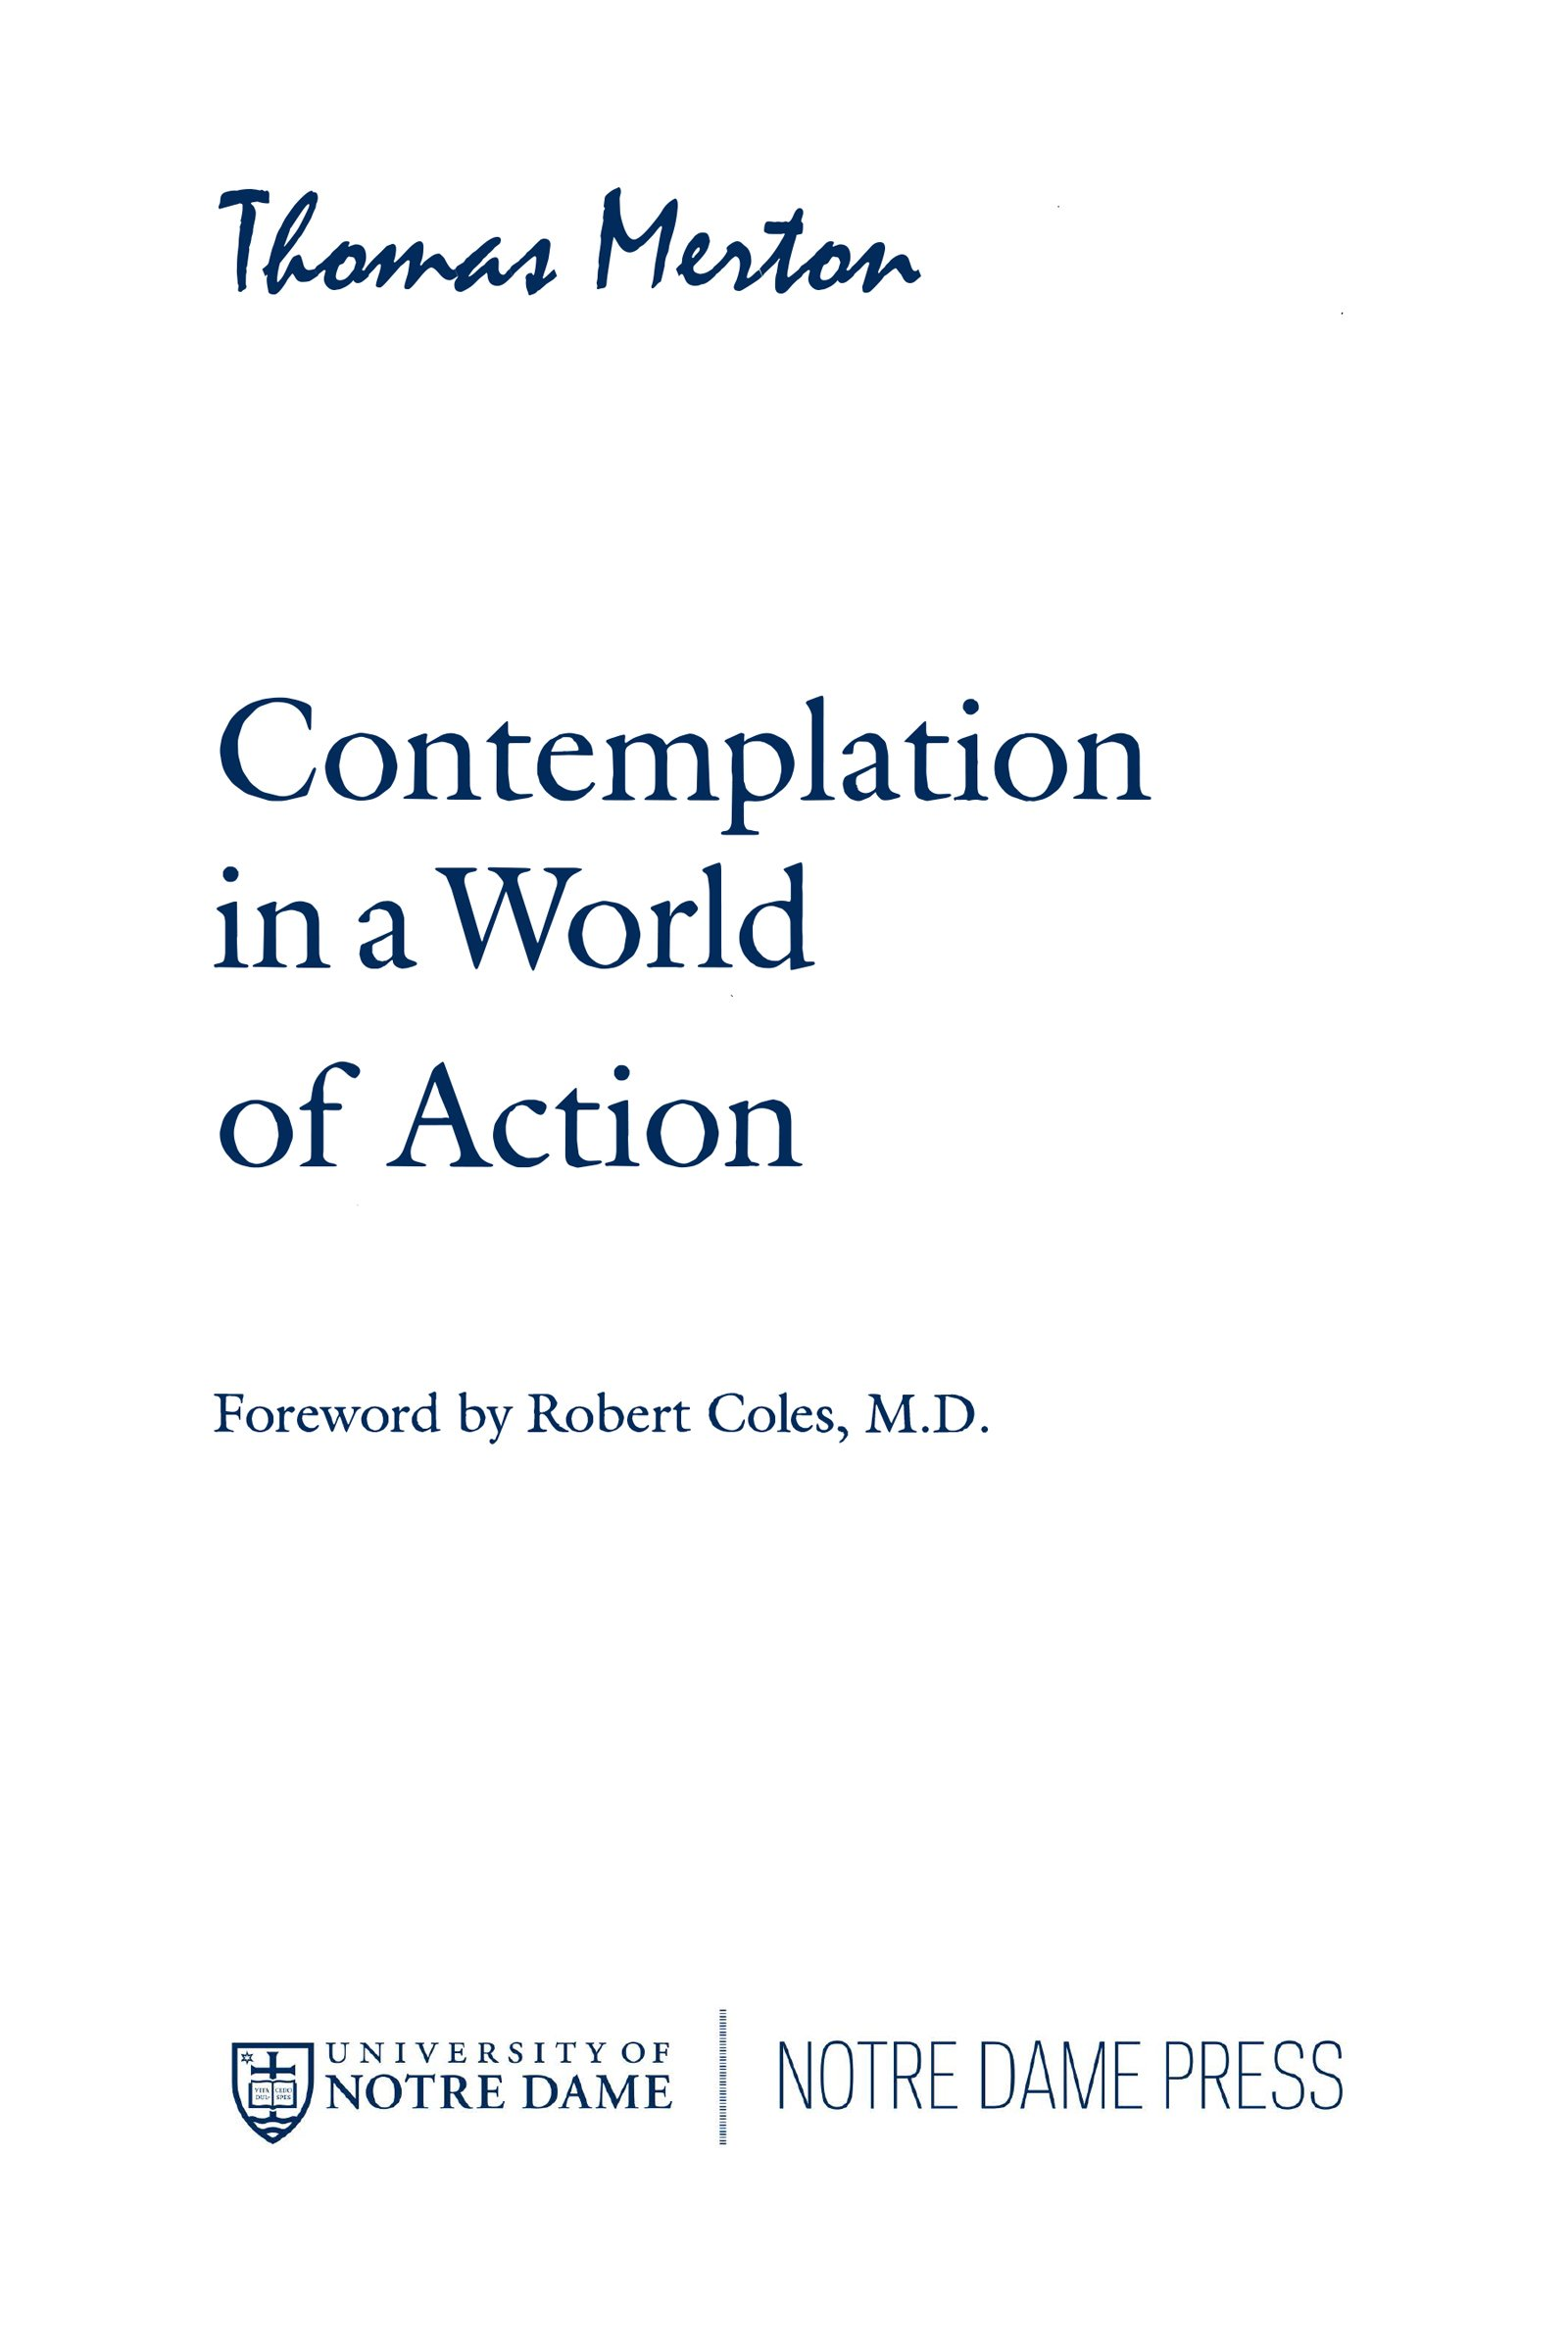 Contemplation in a world of action second edition restored and contemplation in a world of action second edition restored and corrected gethsemani studies p thomas merton 9780268008345 amazon books fandeluxe Image collections